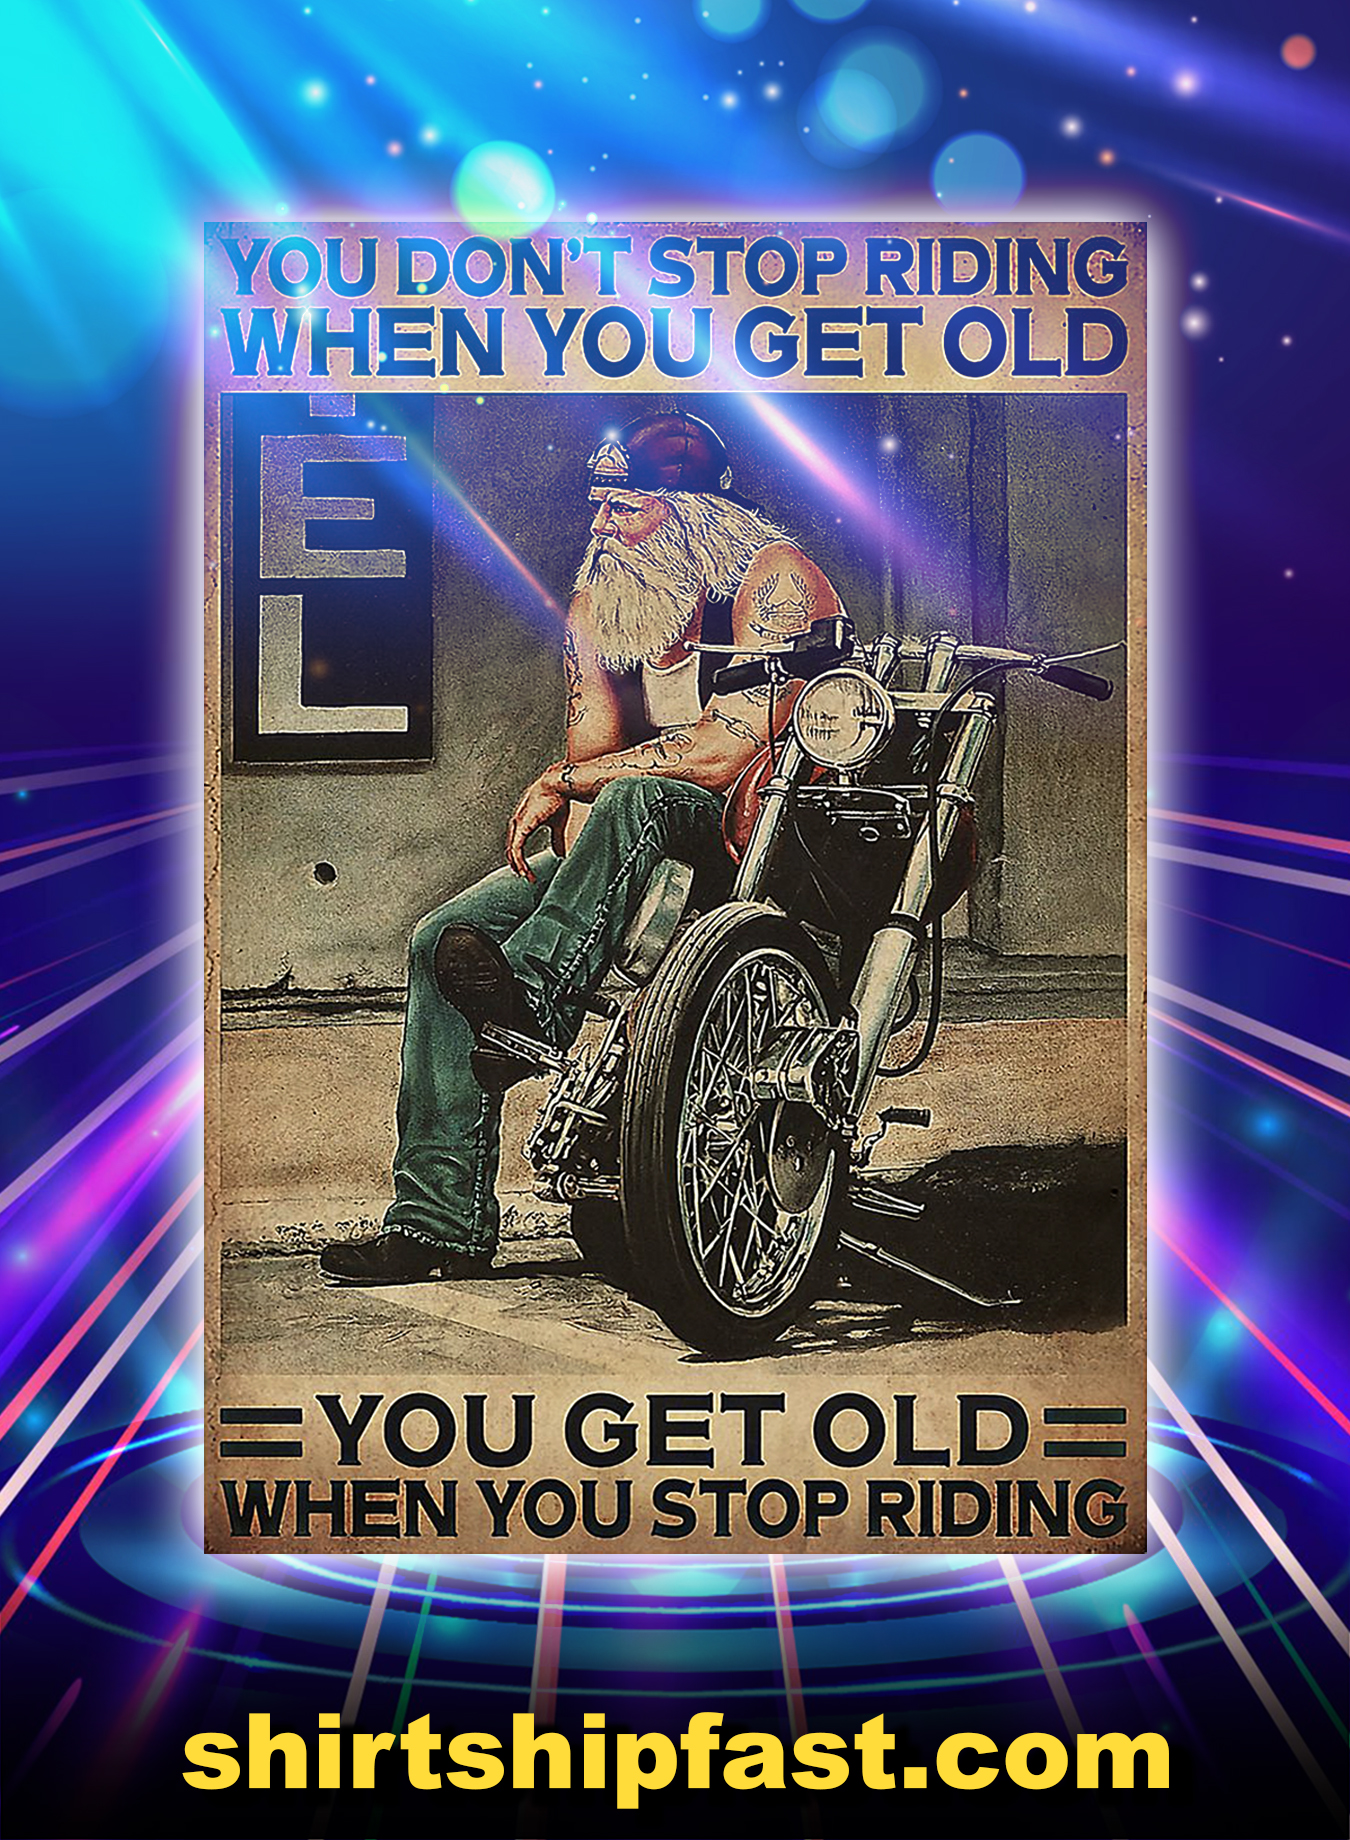 Motorcycle you don't stop racing when you get old poster - A3